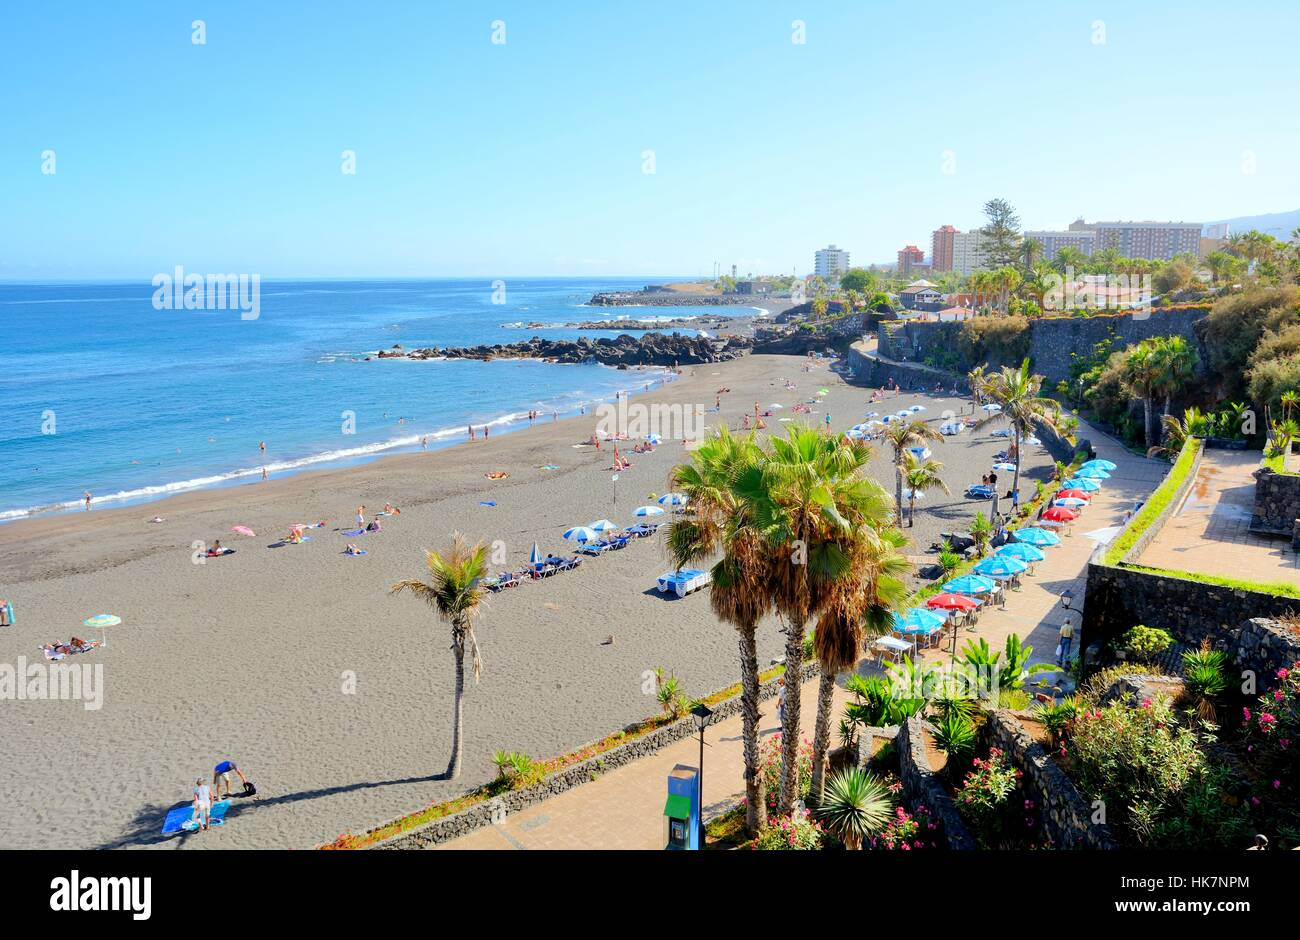 Playa jardin beach at puerto de la cruz on tenerife stock for Aparthotel jardin de playa